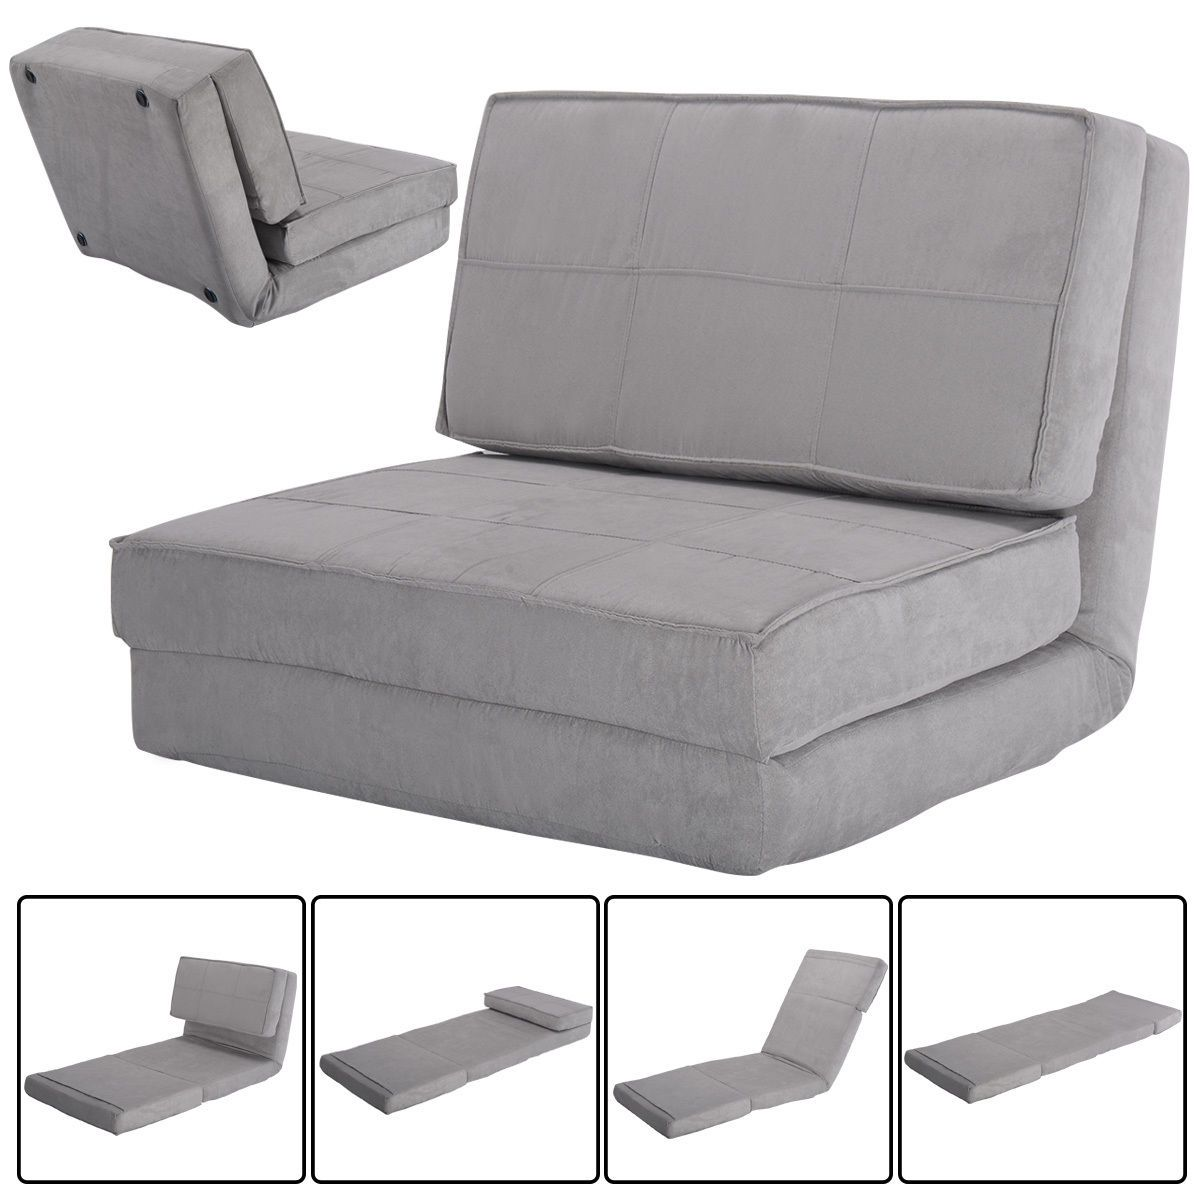 Folding Chair Into Bed Rattan Dining Chairs Convertible Lounger Sofa Sleeper In 2019